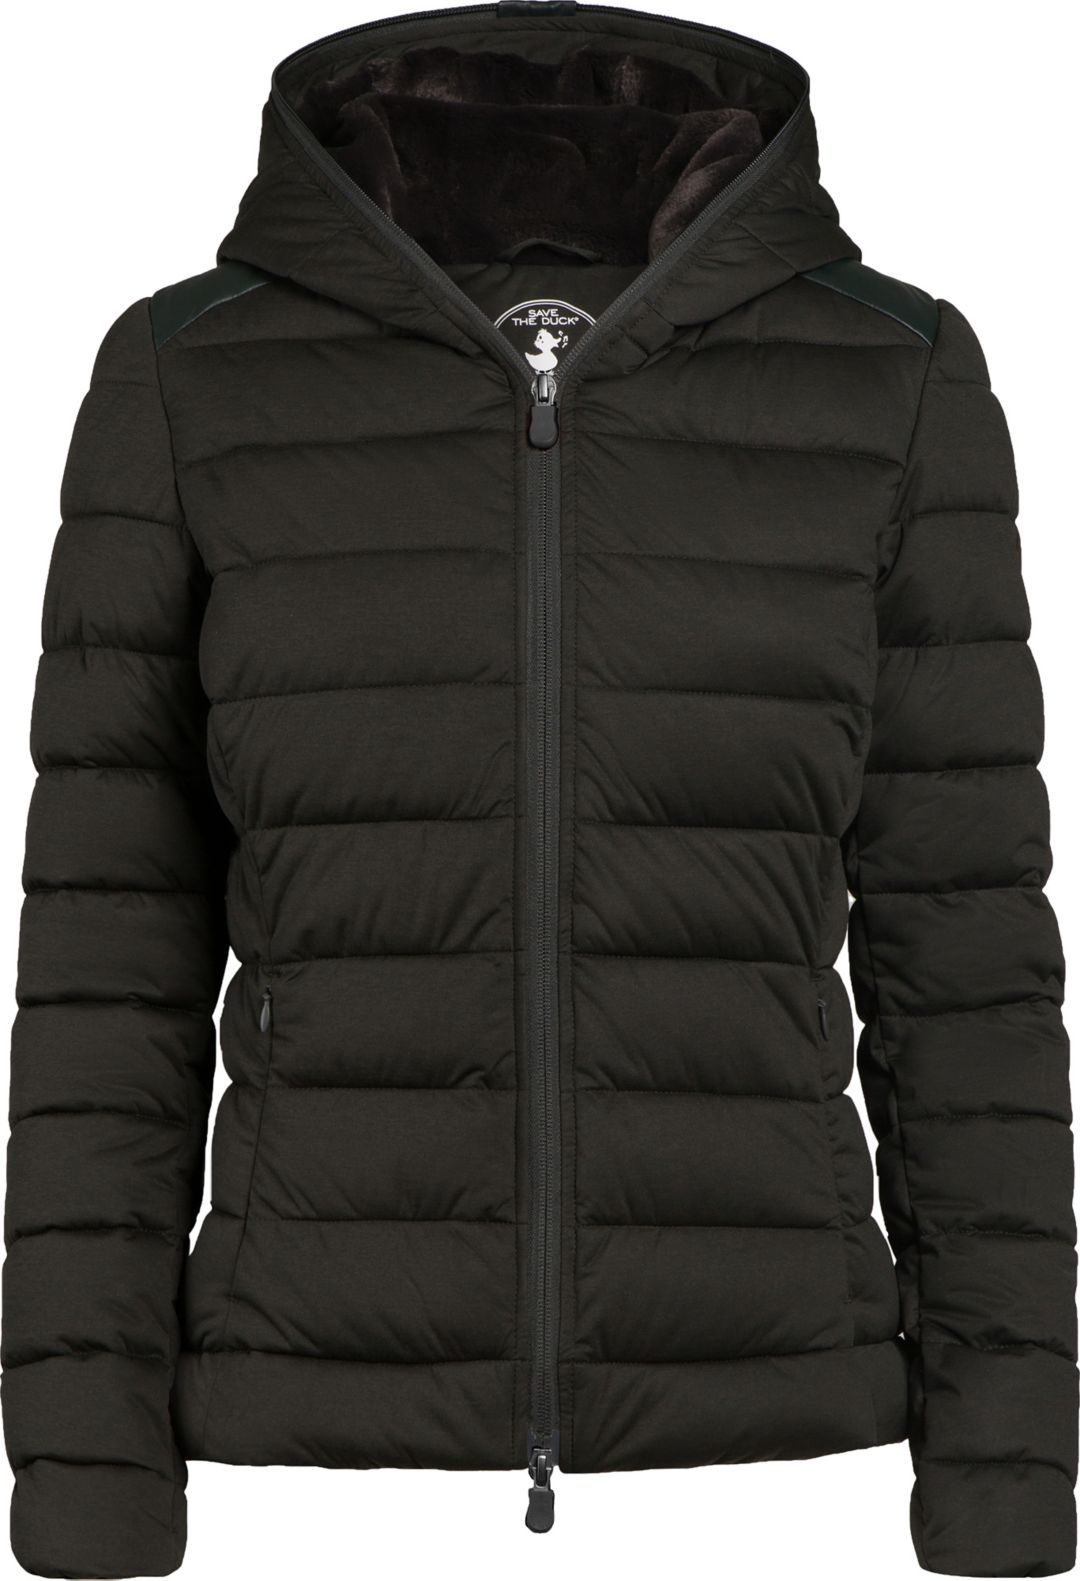 new styles e0f5b 8e8c8 Save The Duck Women's Sold Jacket